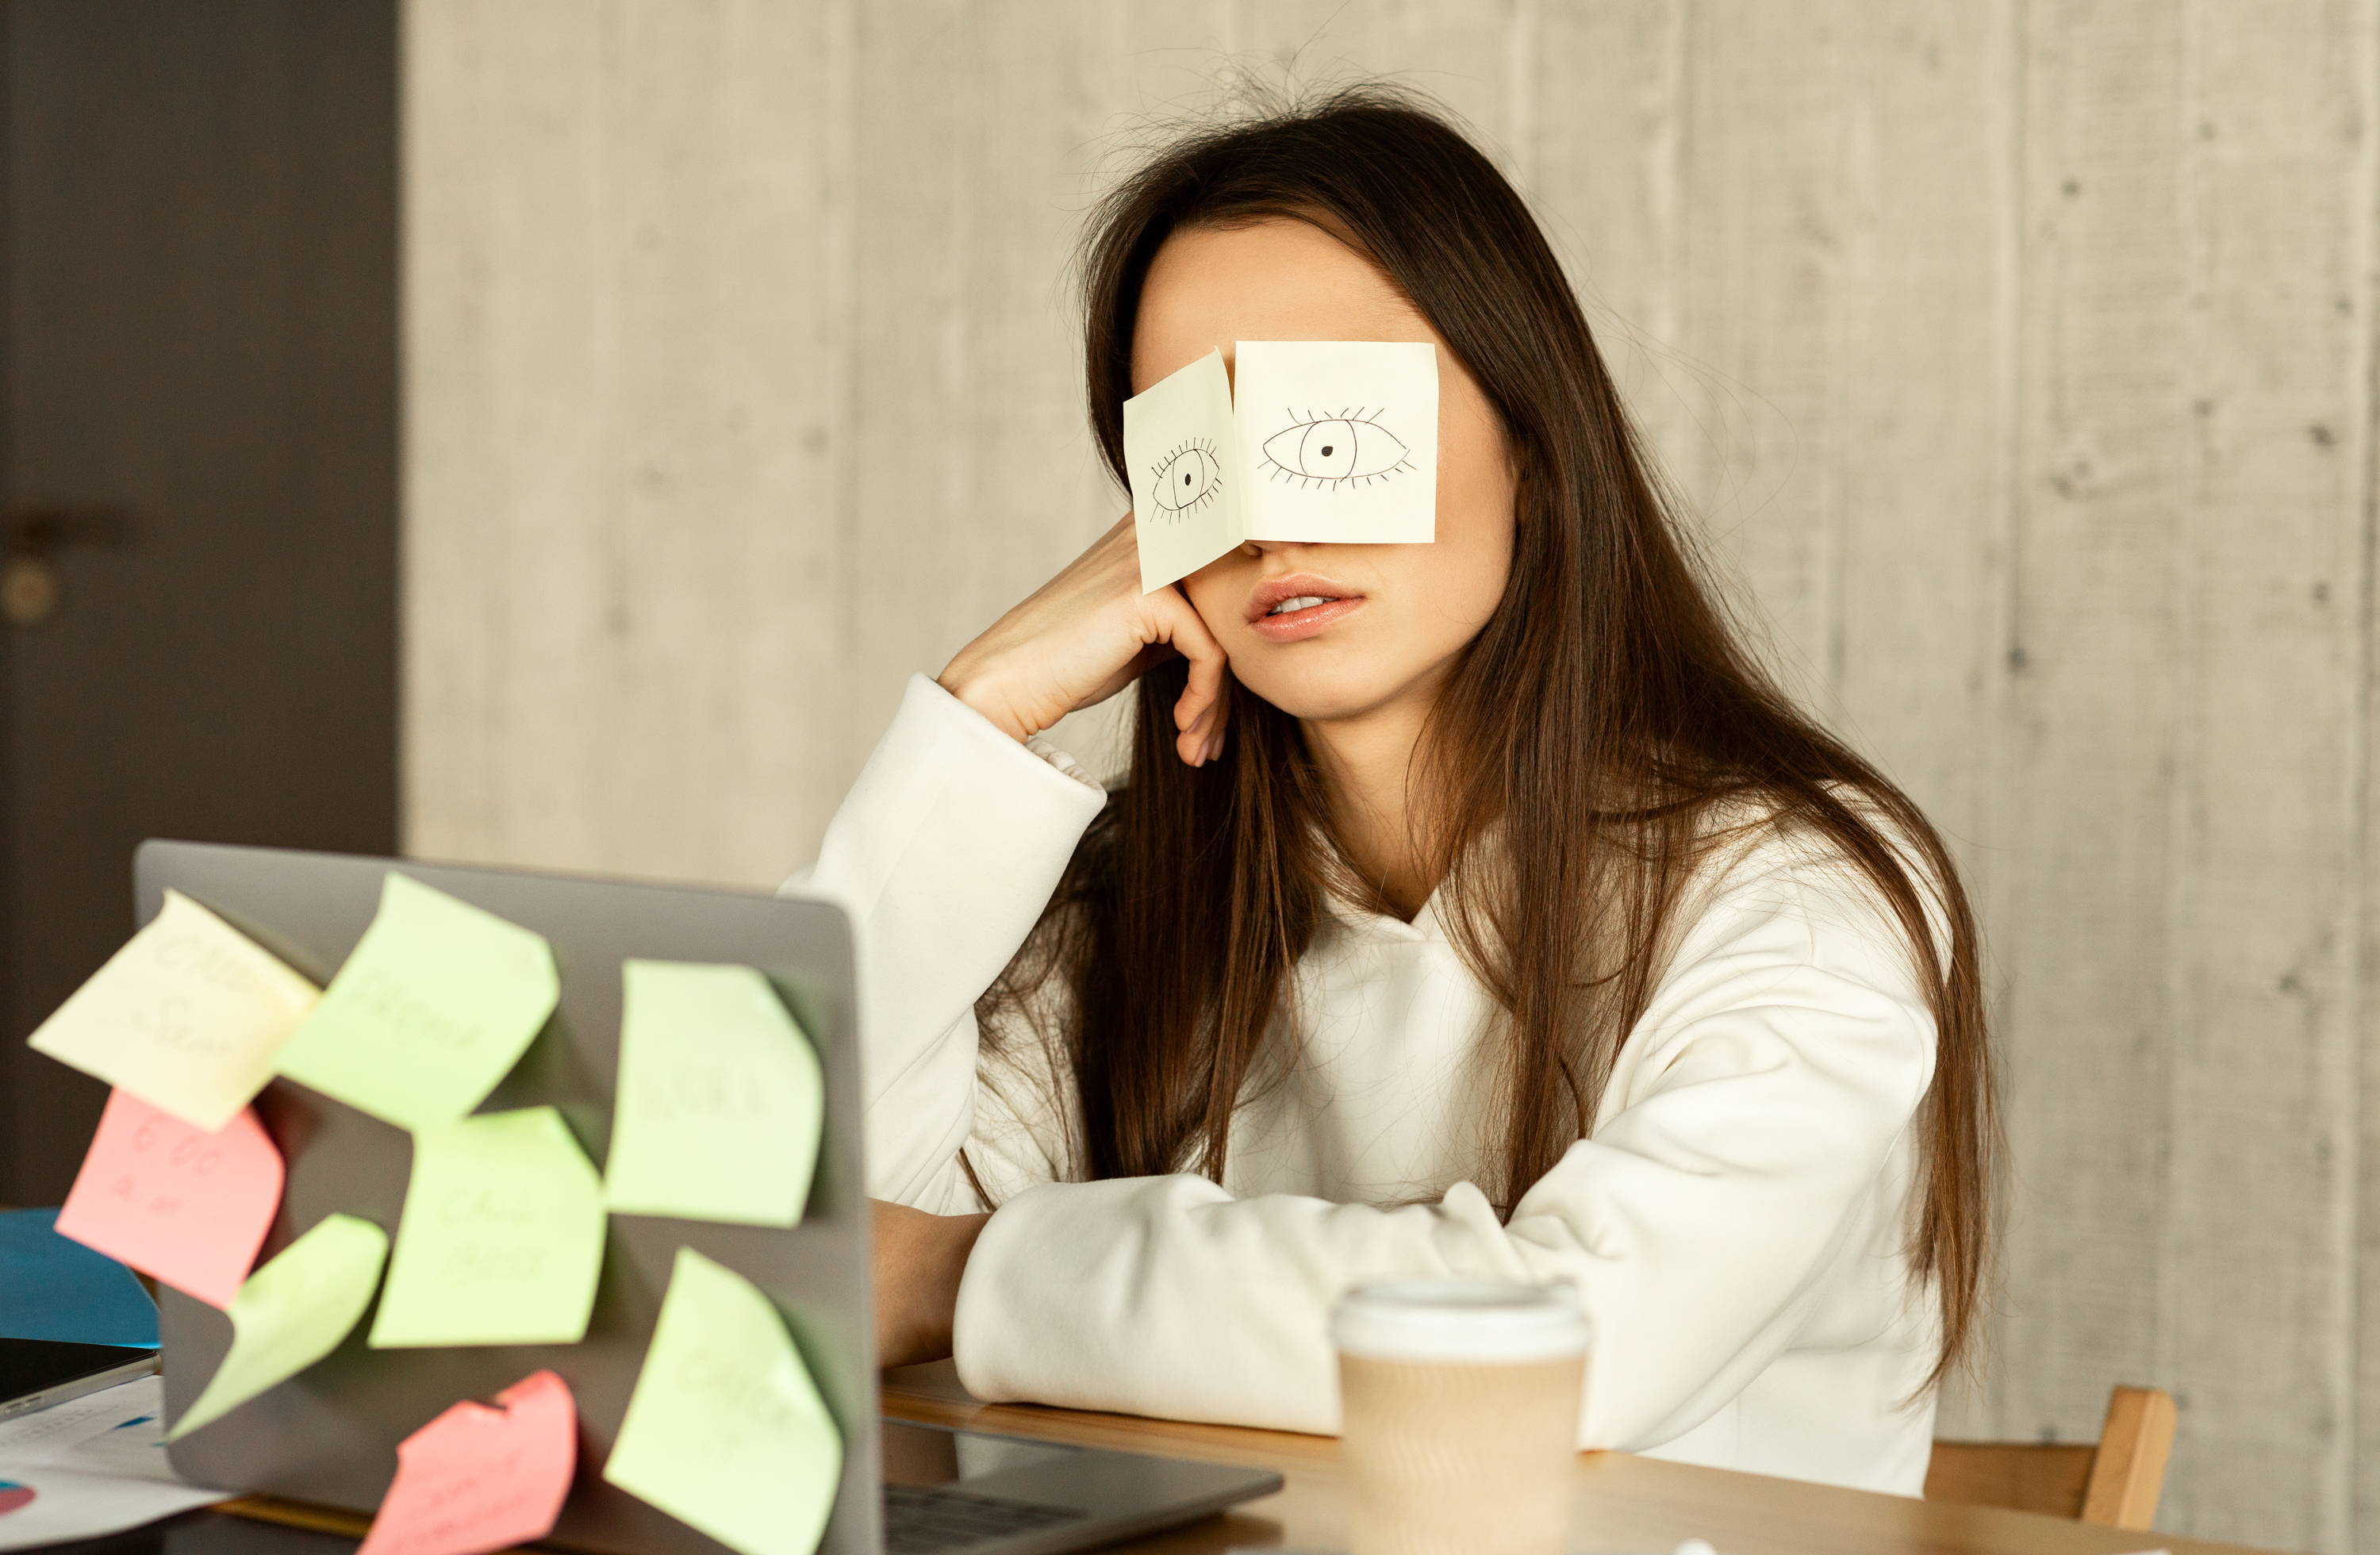 woman struggling with lack of focus, she has two post its with drawings of eyes over her own eyes